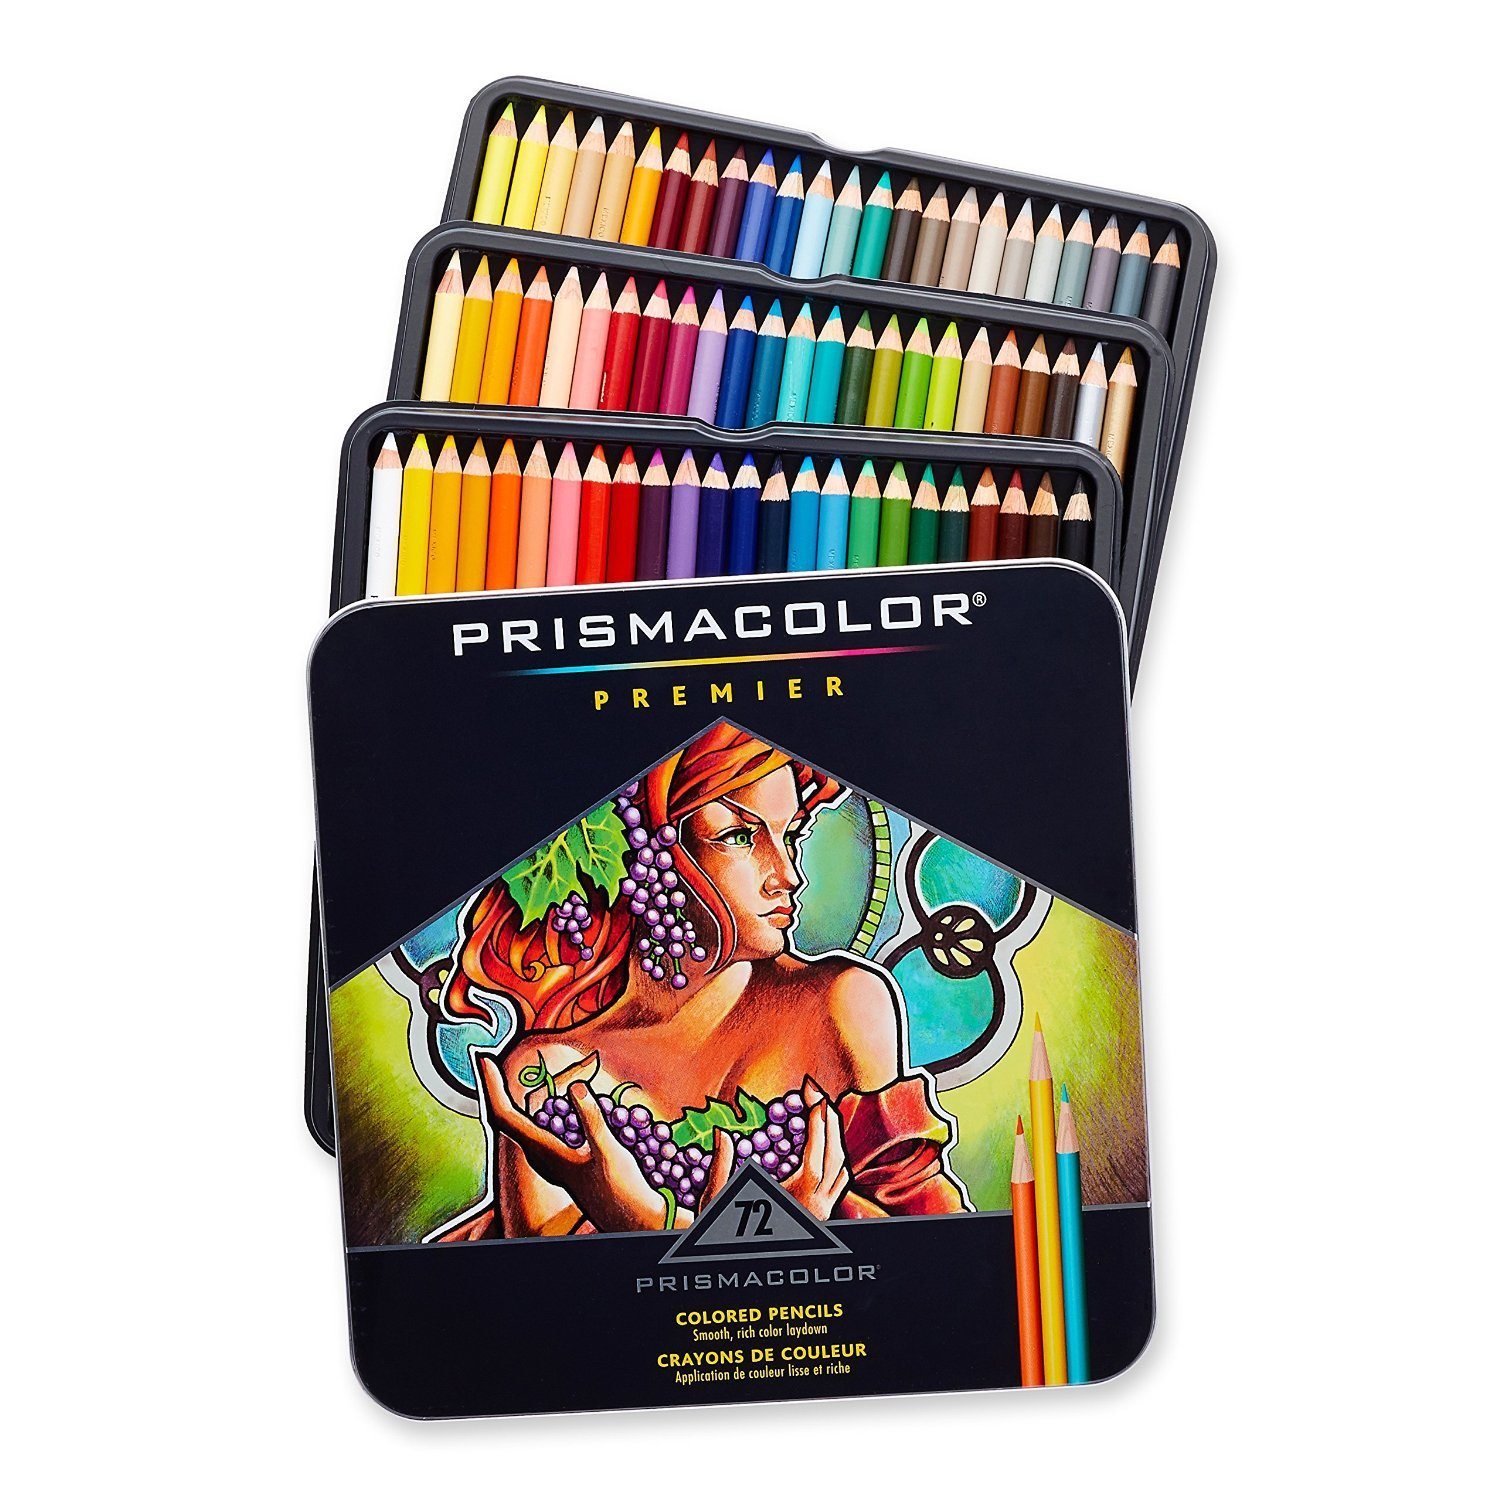 Prismacolor 3599TN Premier Soft Core 72 Colored Pencils + 1774266 Scholar Colored Pencil Sharpener; Perfect for Layering, Blending and Shading; Soft, Thick Cores Create a Smooth Color Laydown by Prismacolor (Image #1)